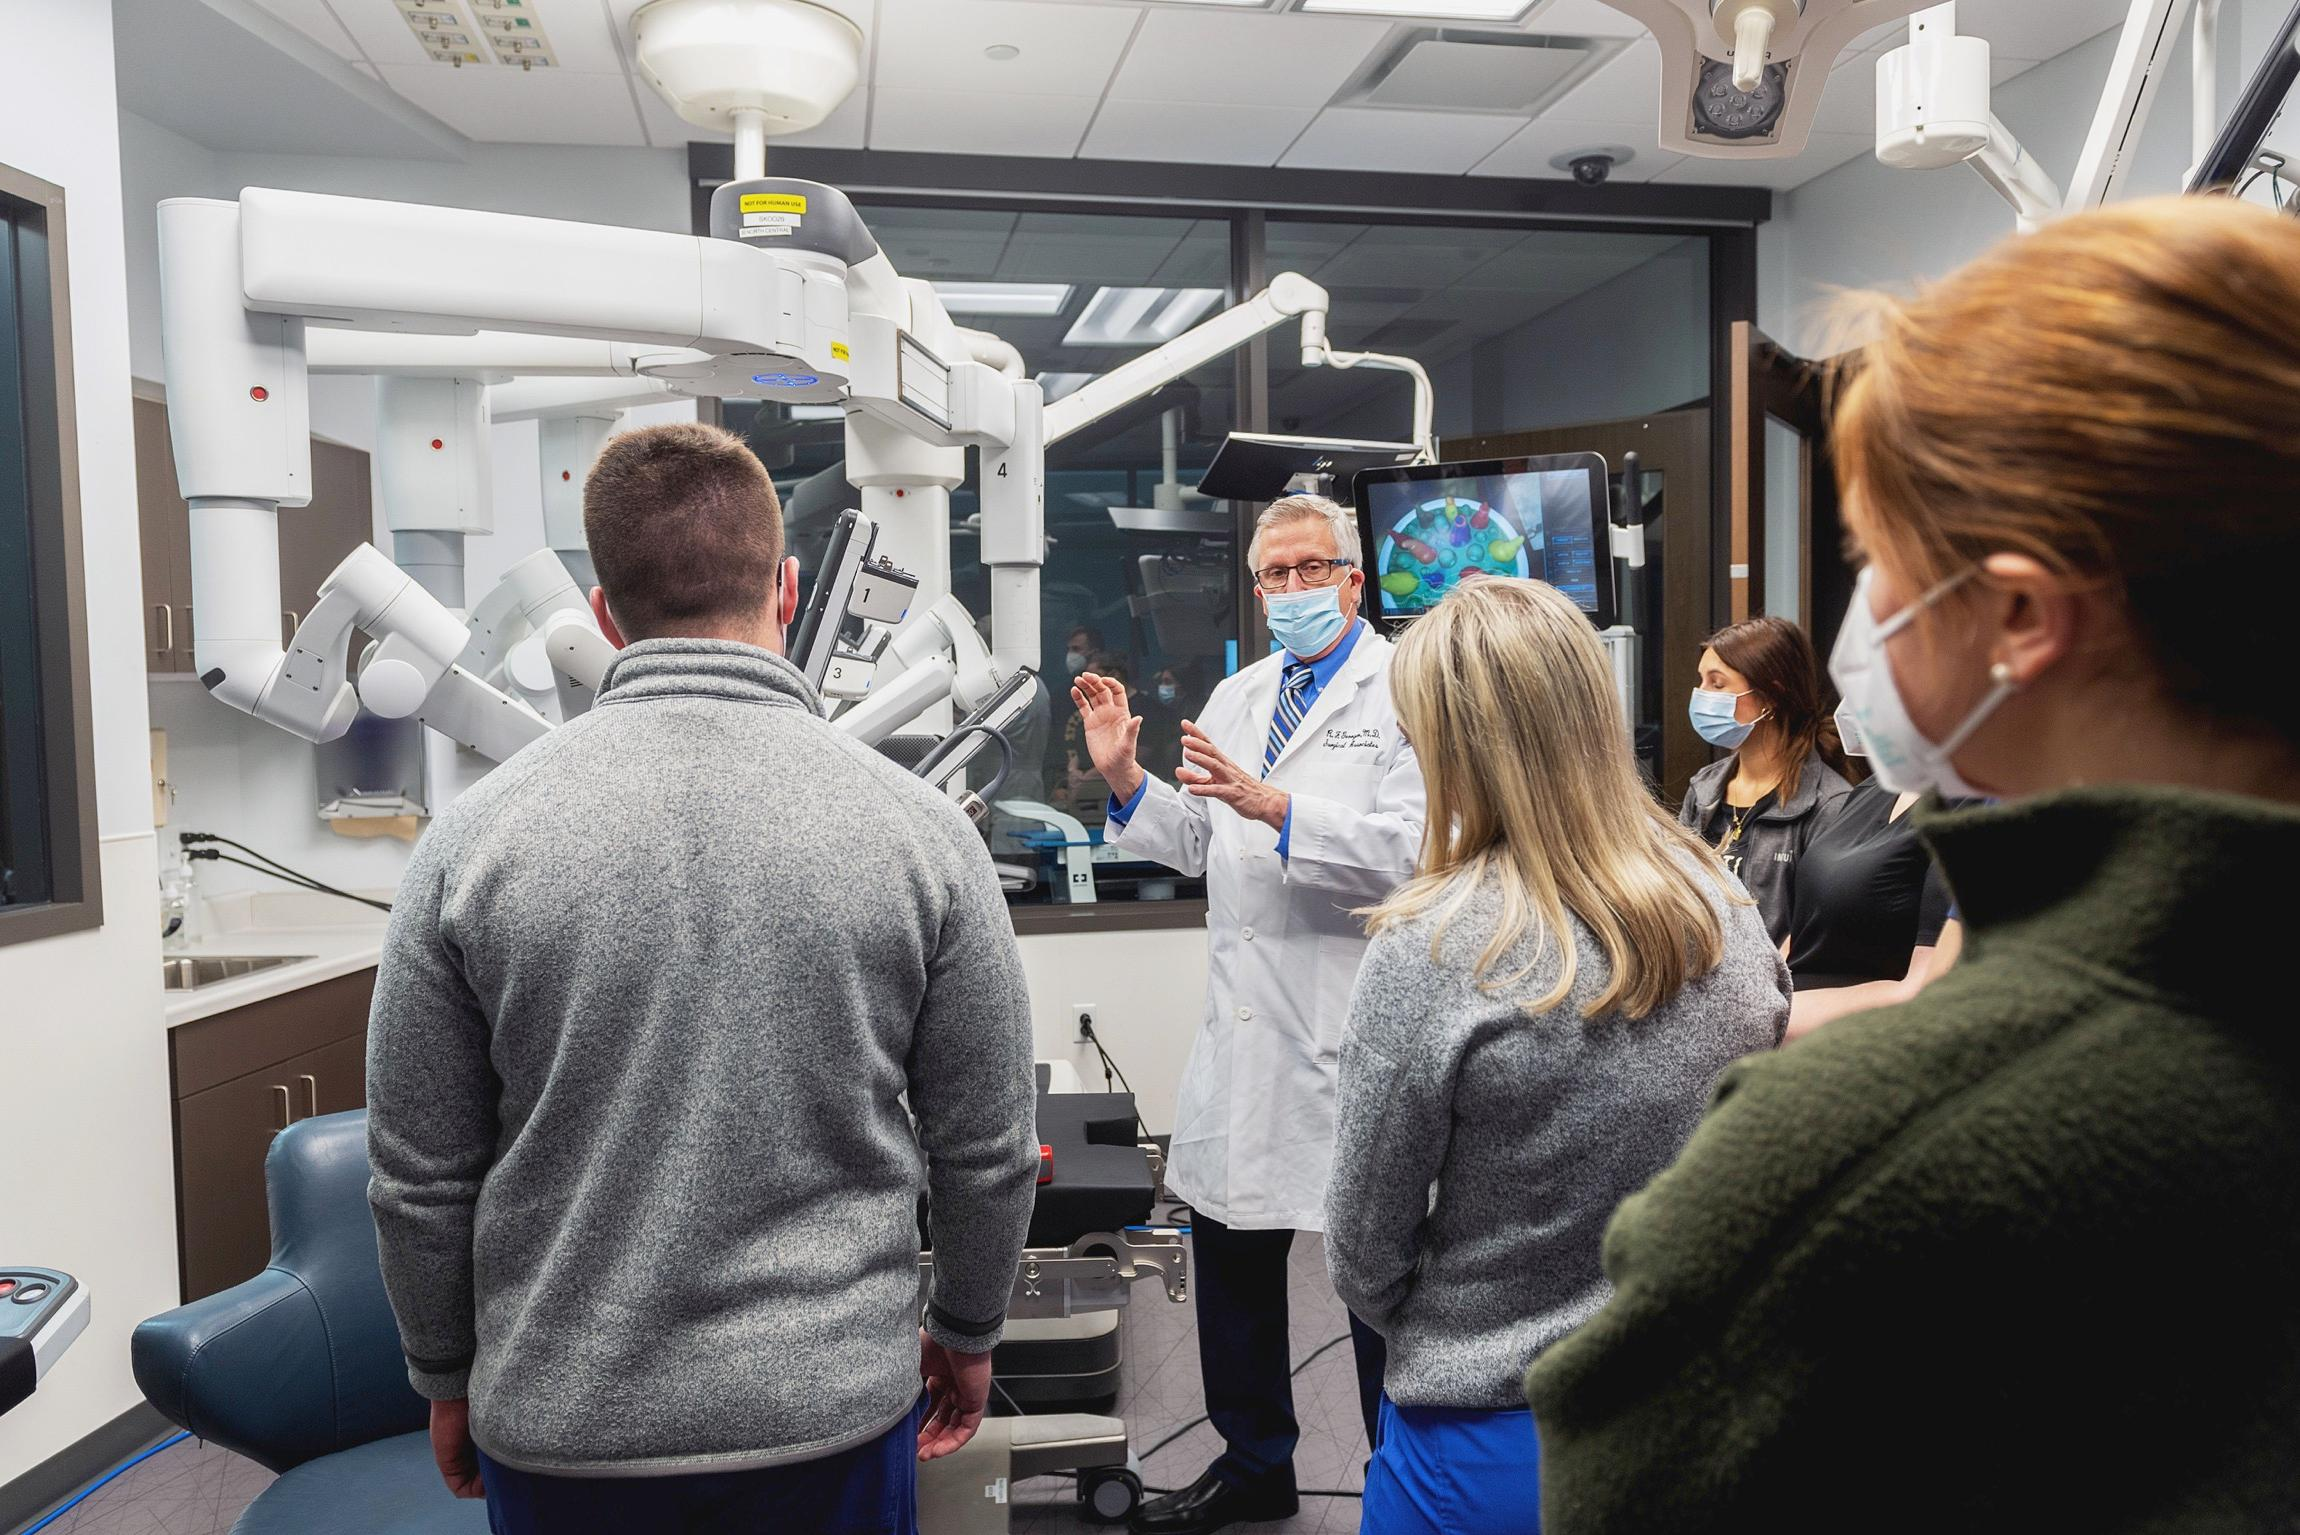 Dr. Georgen demonstrates the DaVinci Robot in the OR Sim